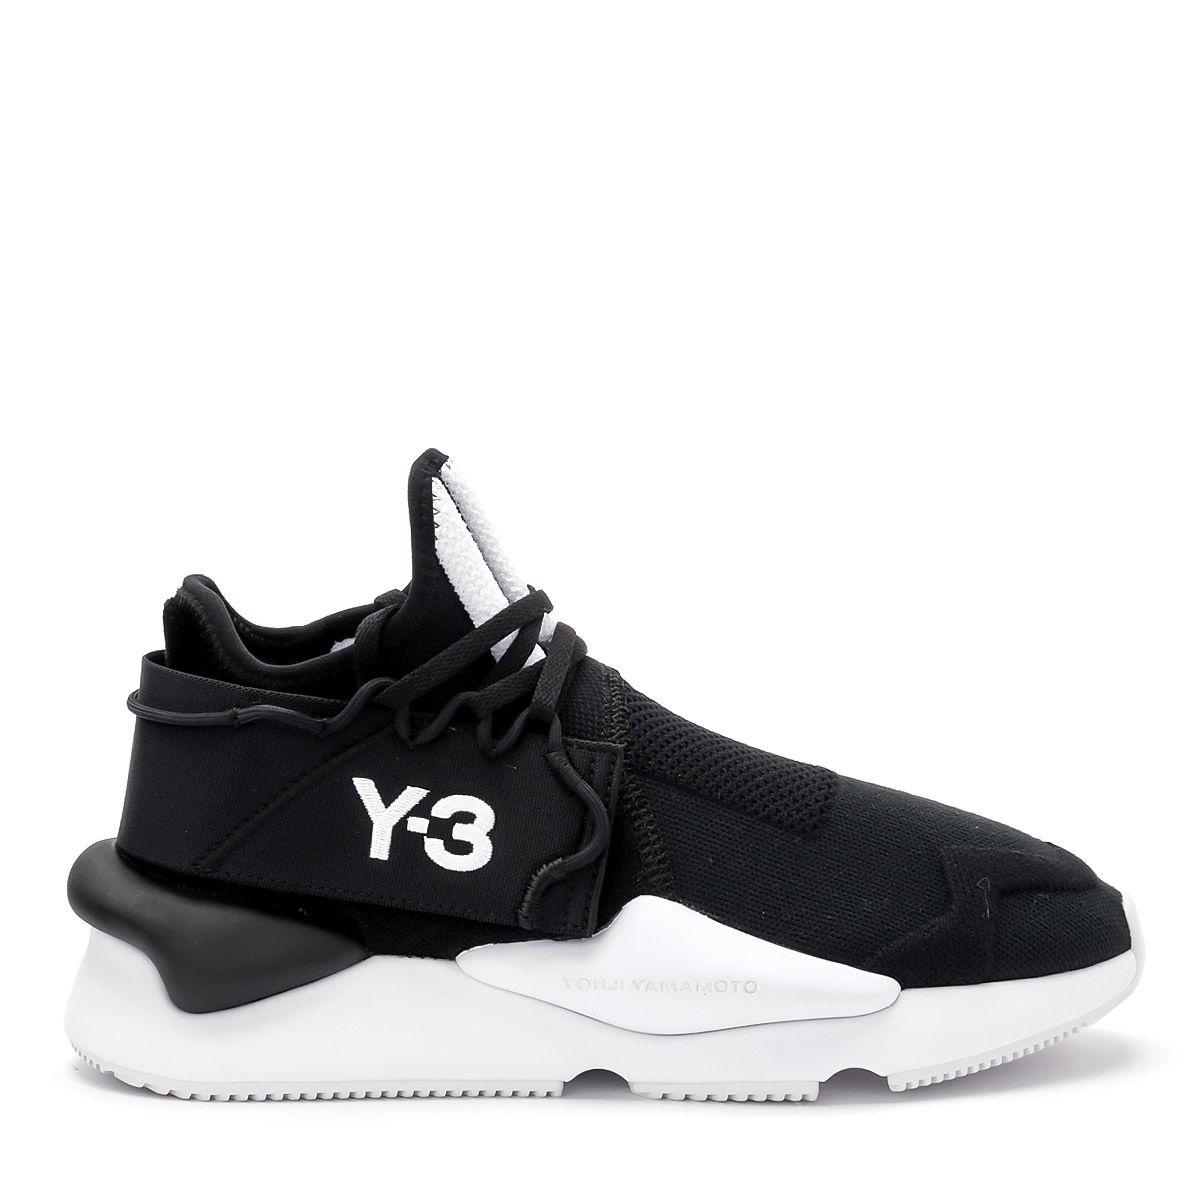 Y-3 Kaiwa Knit Black Fabric Sneaker.